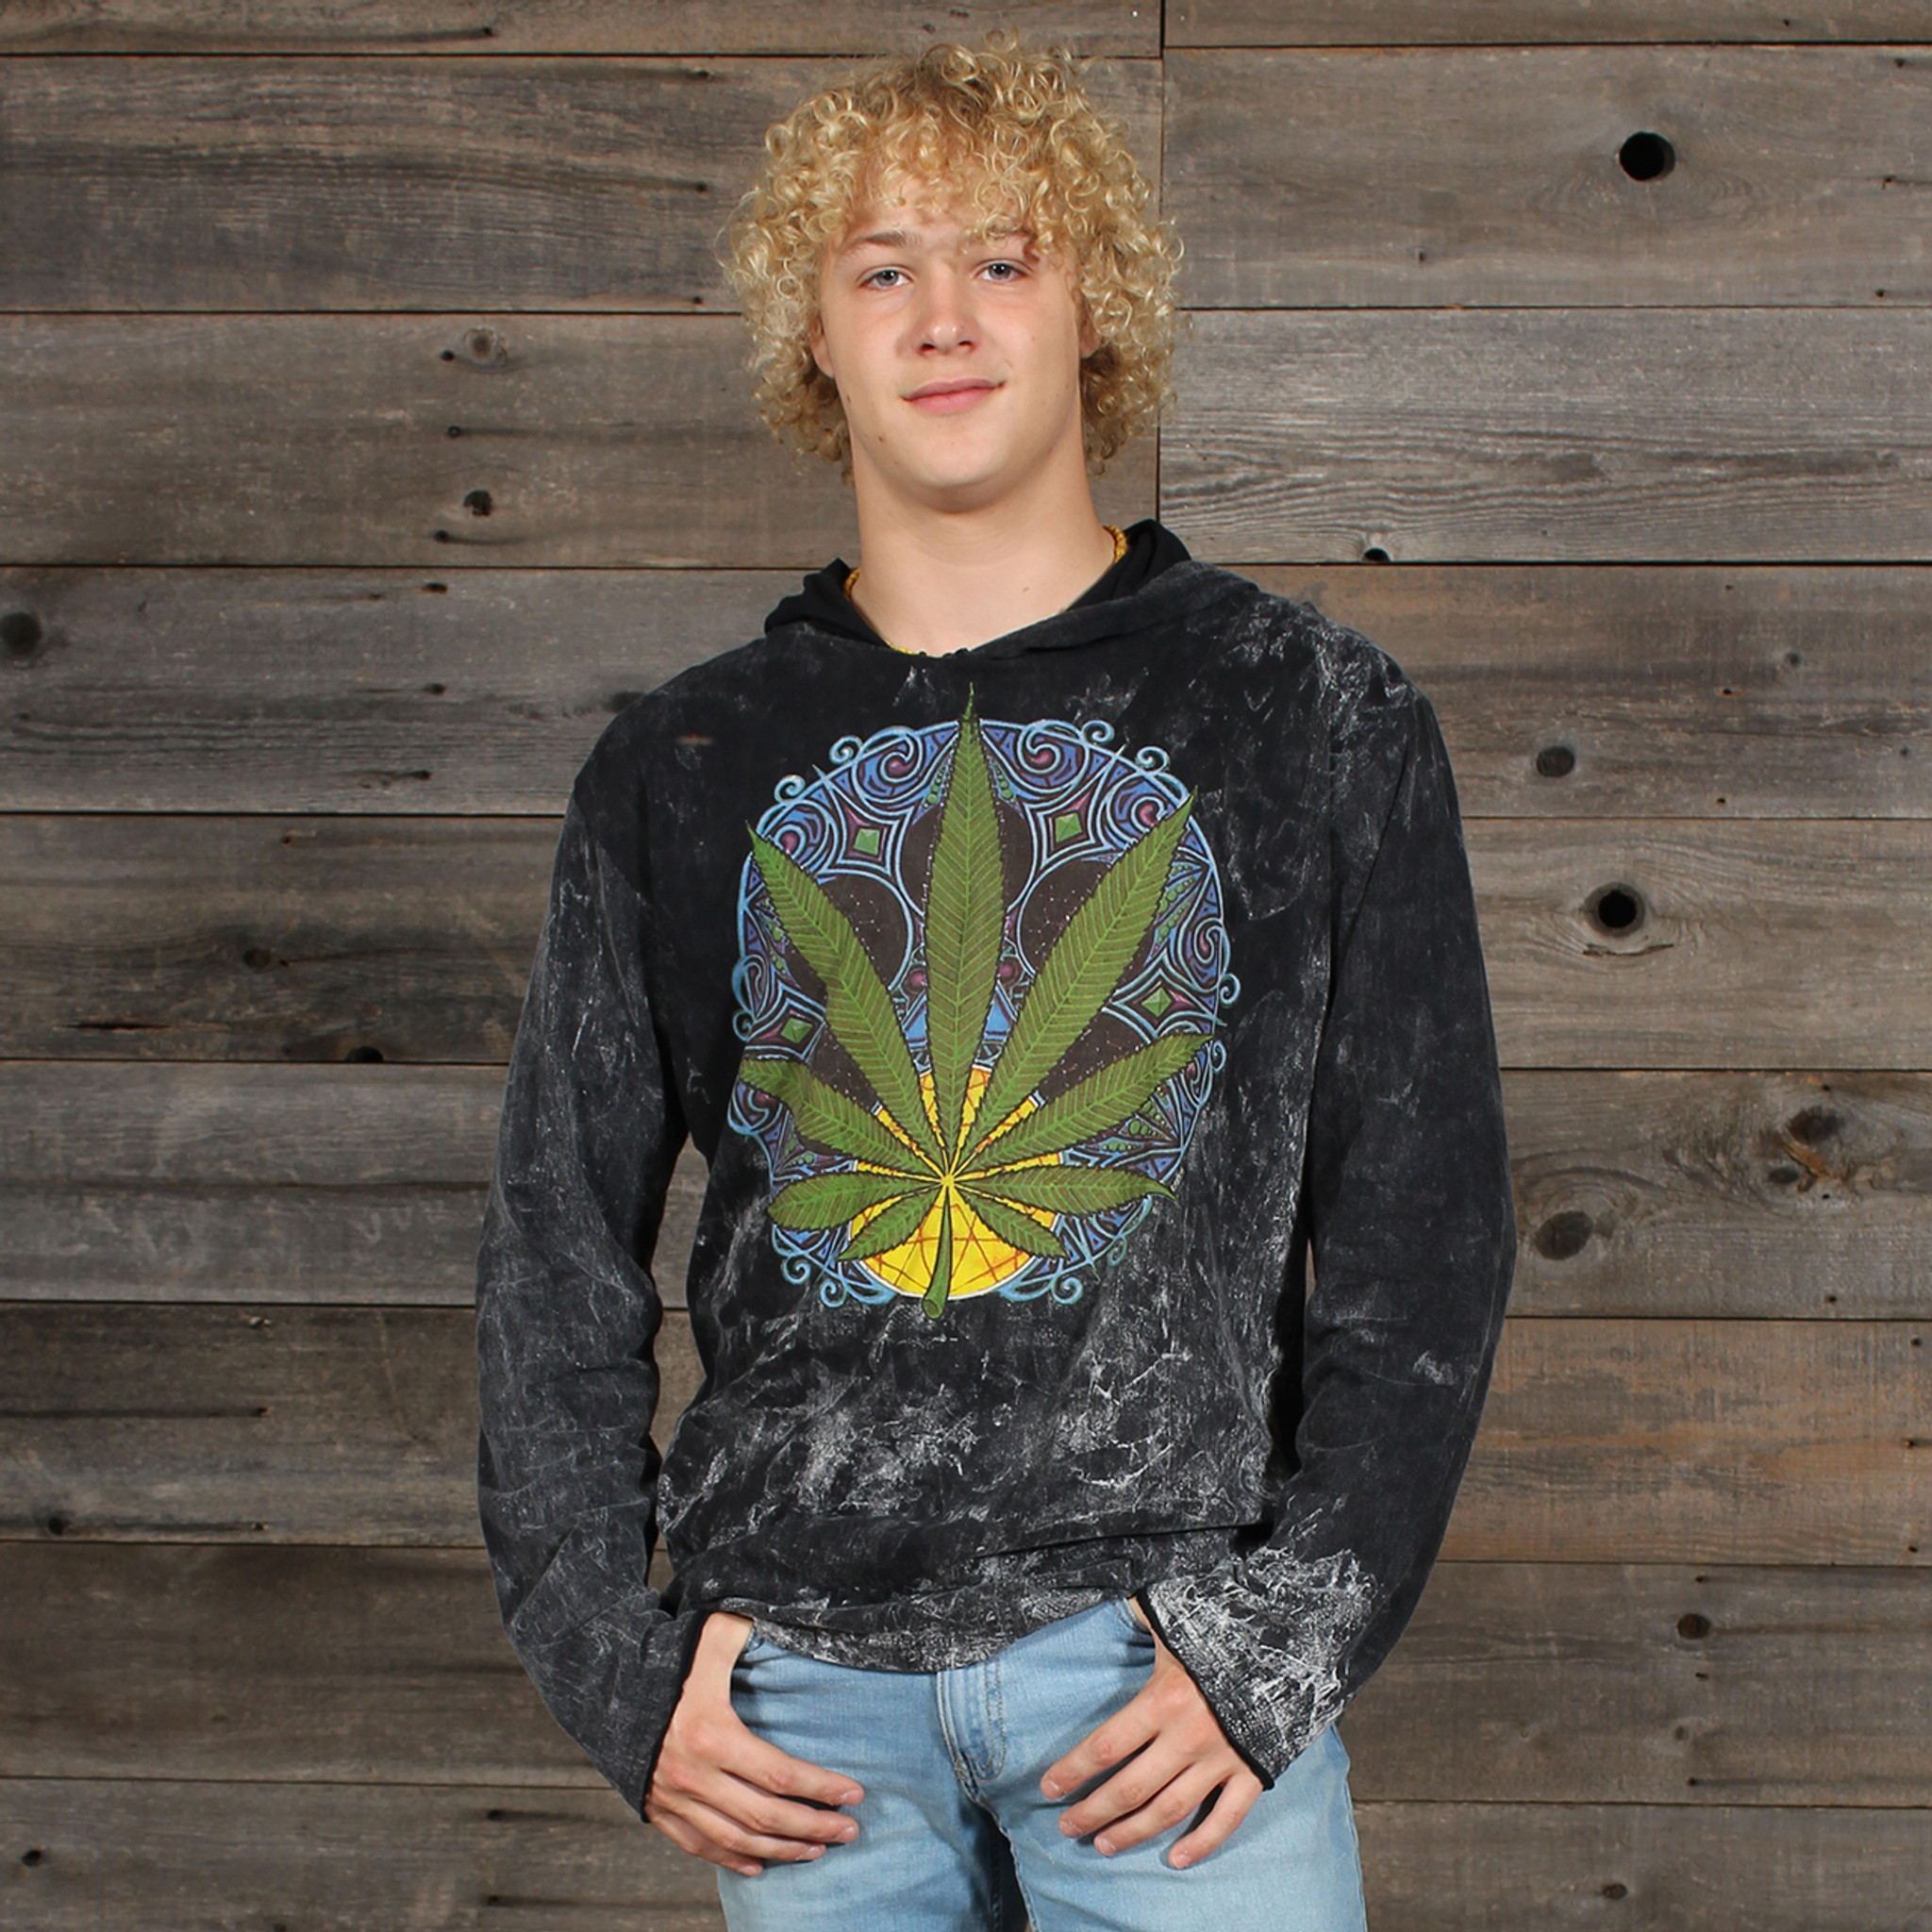 MEN'S NO TIME HOODY Cotton Hooded Men's Sweat Shirt With Pot Leaf Print